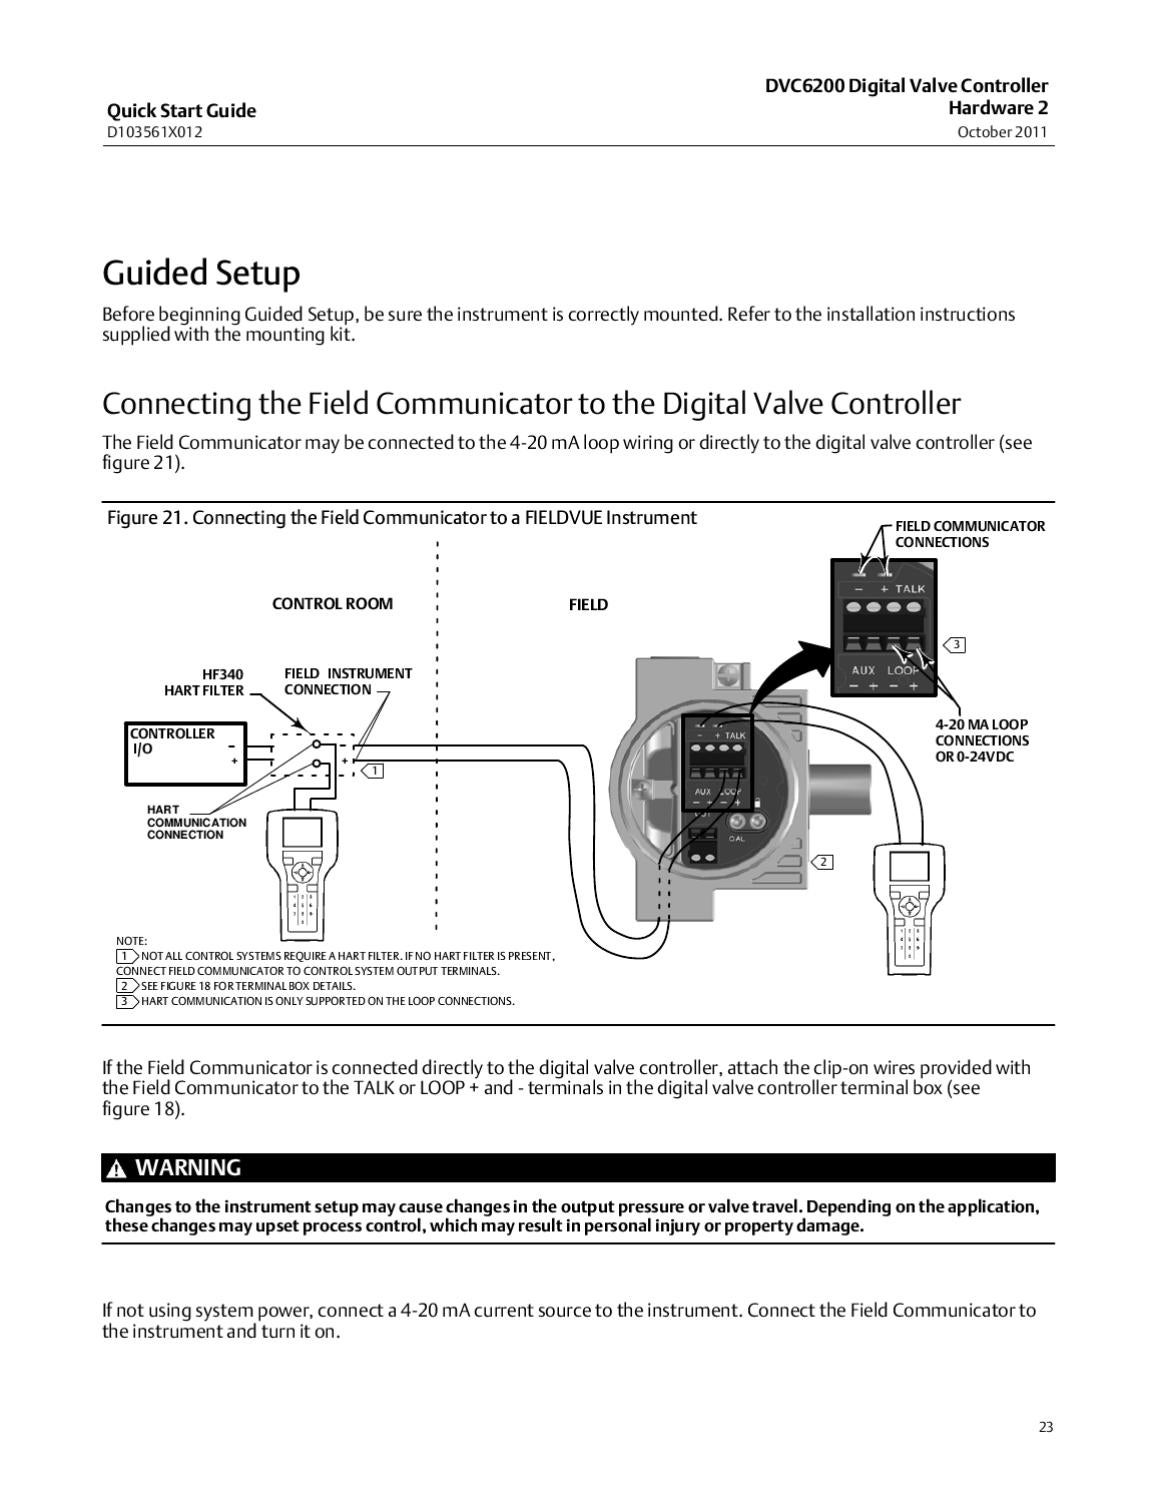 dvc6200 wiring diagram travel trailer converter 22 images